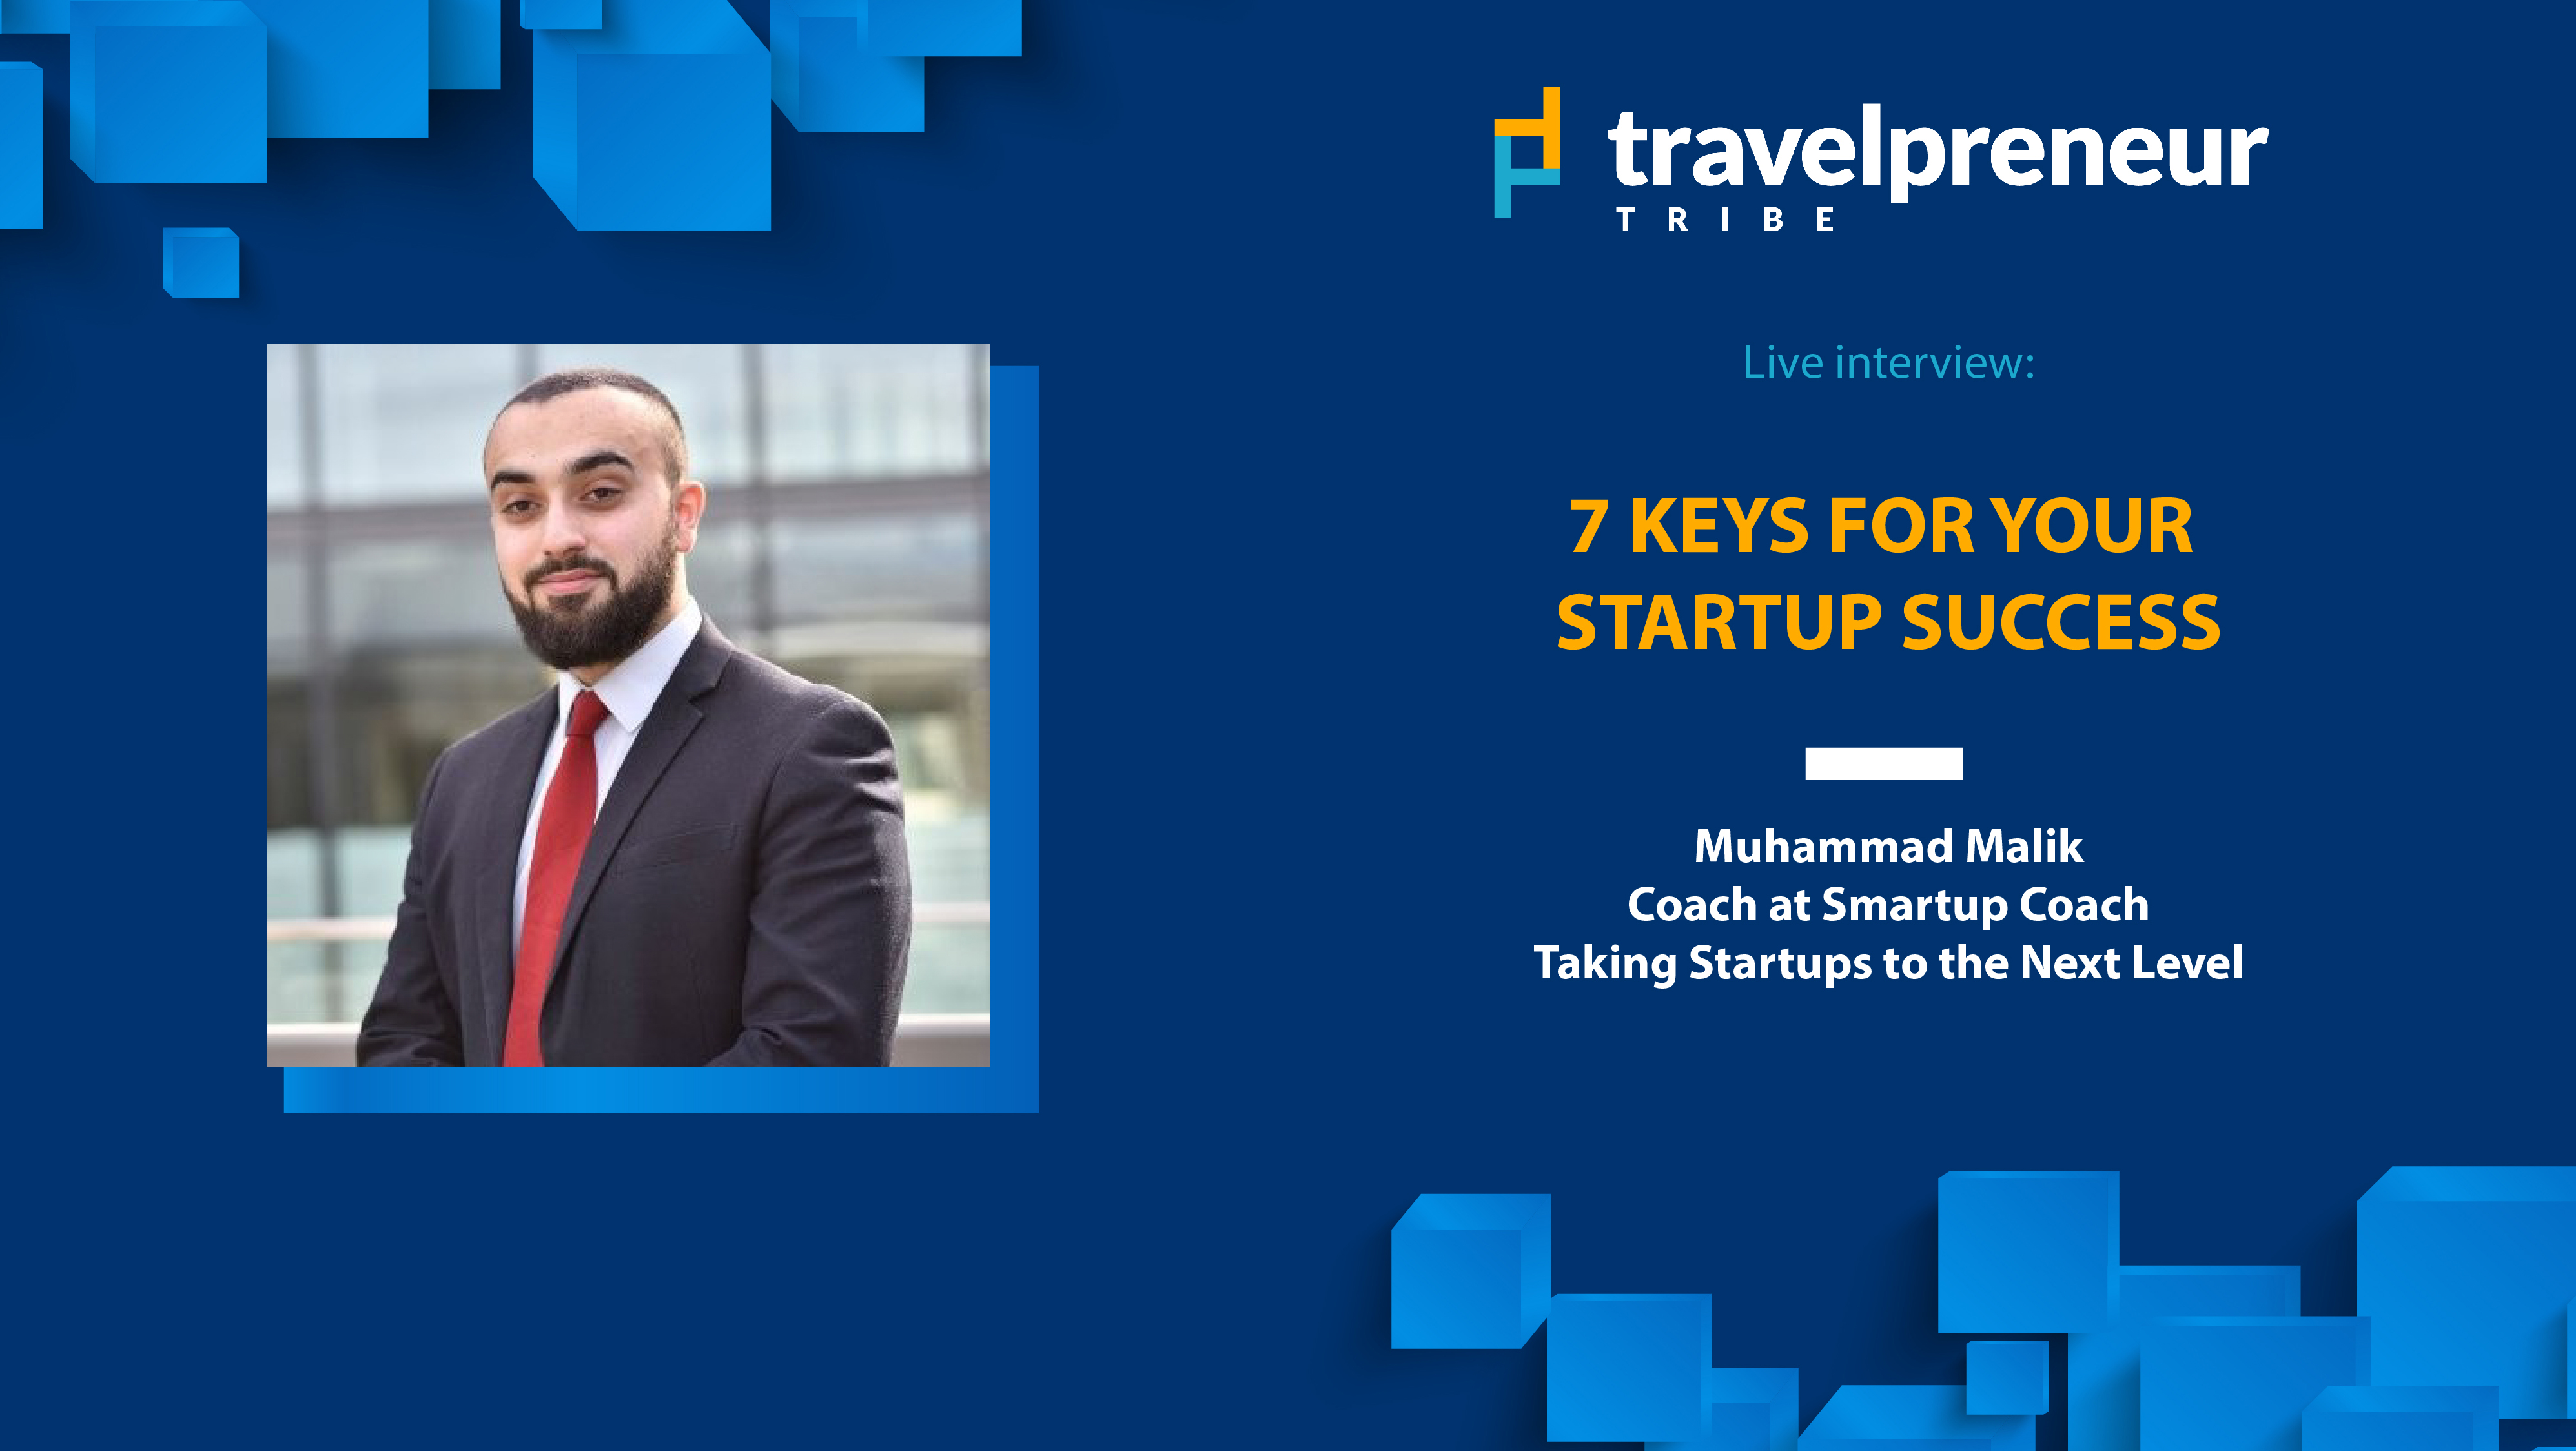 7 keys for your startup success